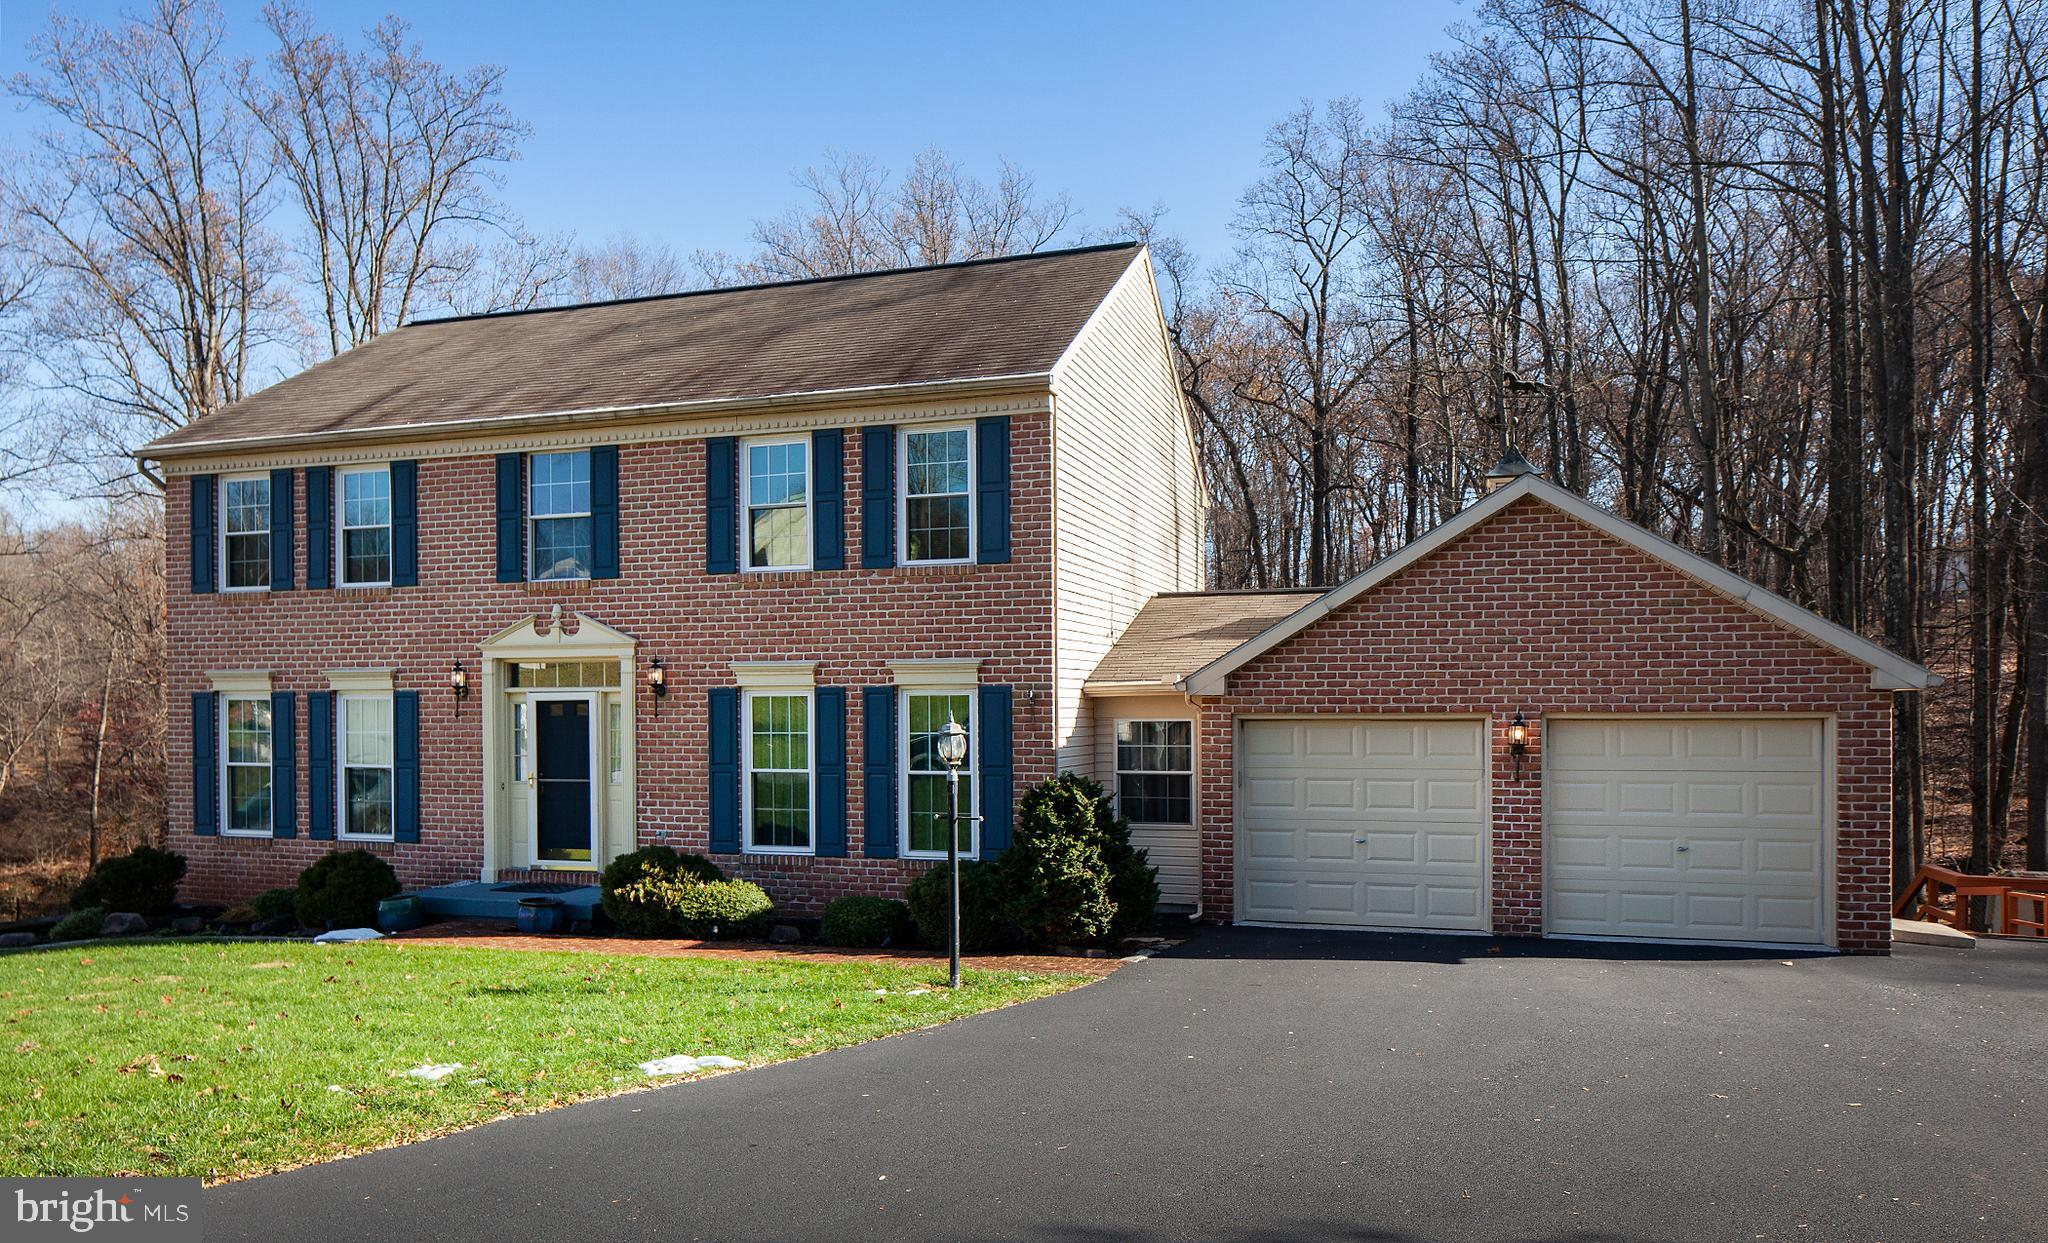 35 BROOK CIRCLE, ETTERS, PA 17319